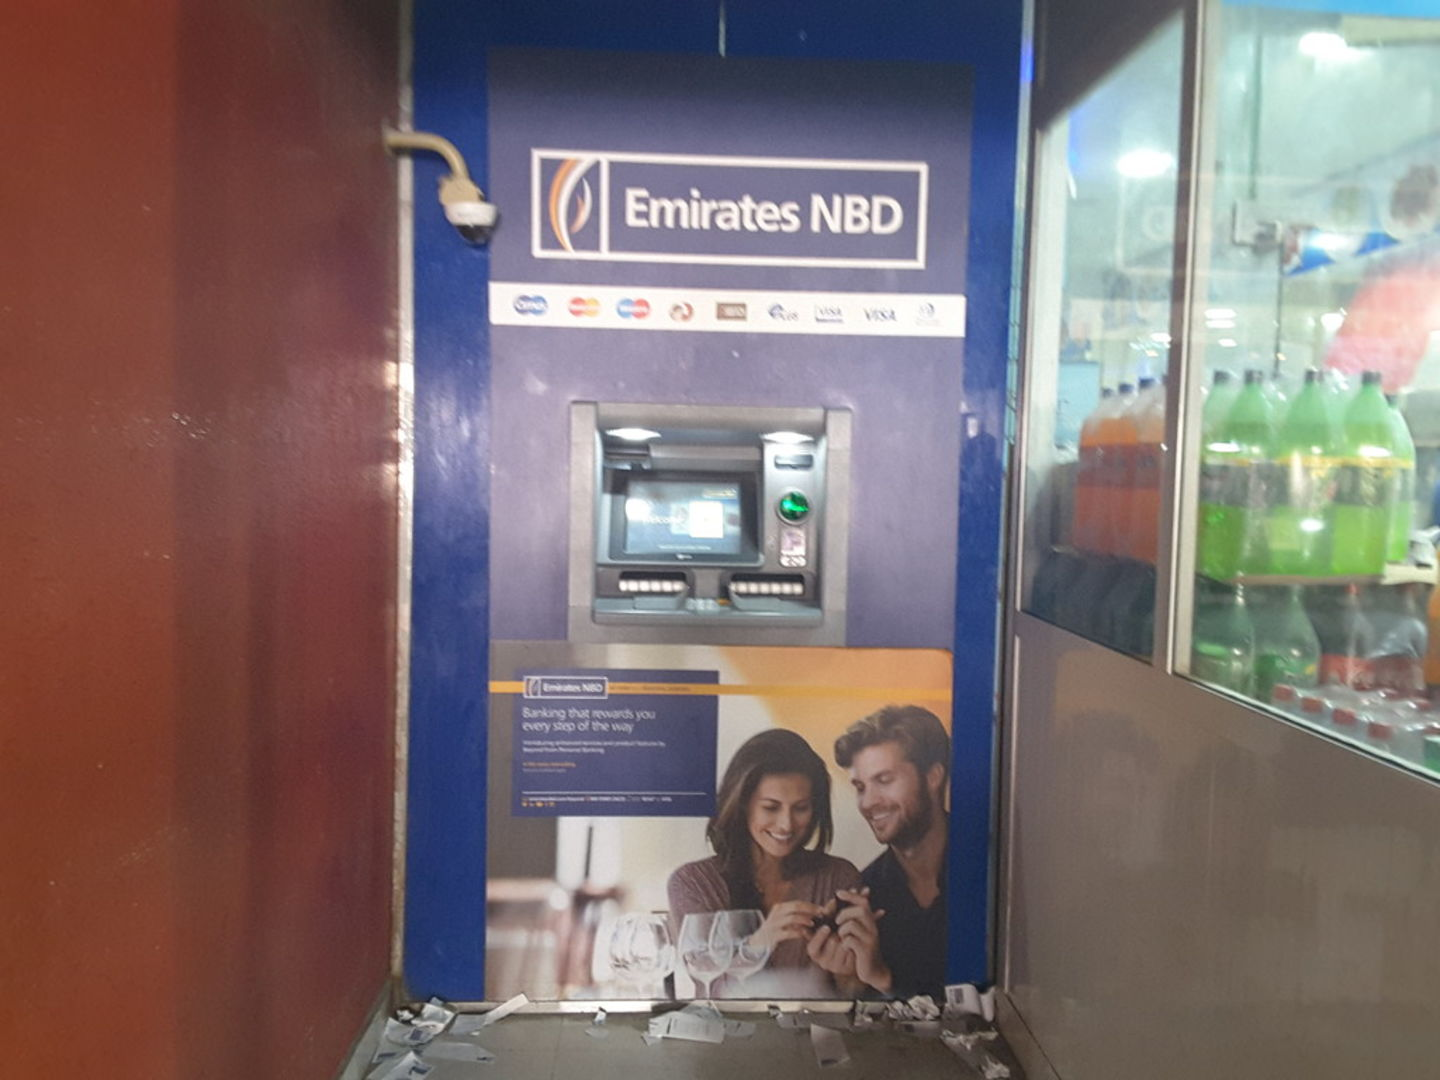 HiDubai-business-emirates-nbd-atm-finance-legal-banks-atms-dubai-investment-park-2-dubai-2